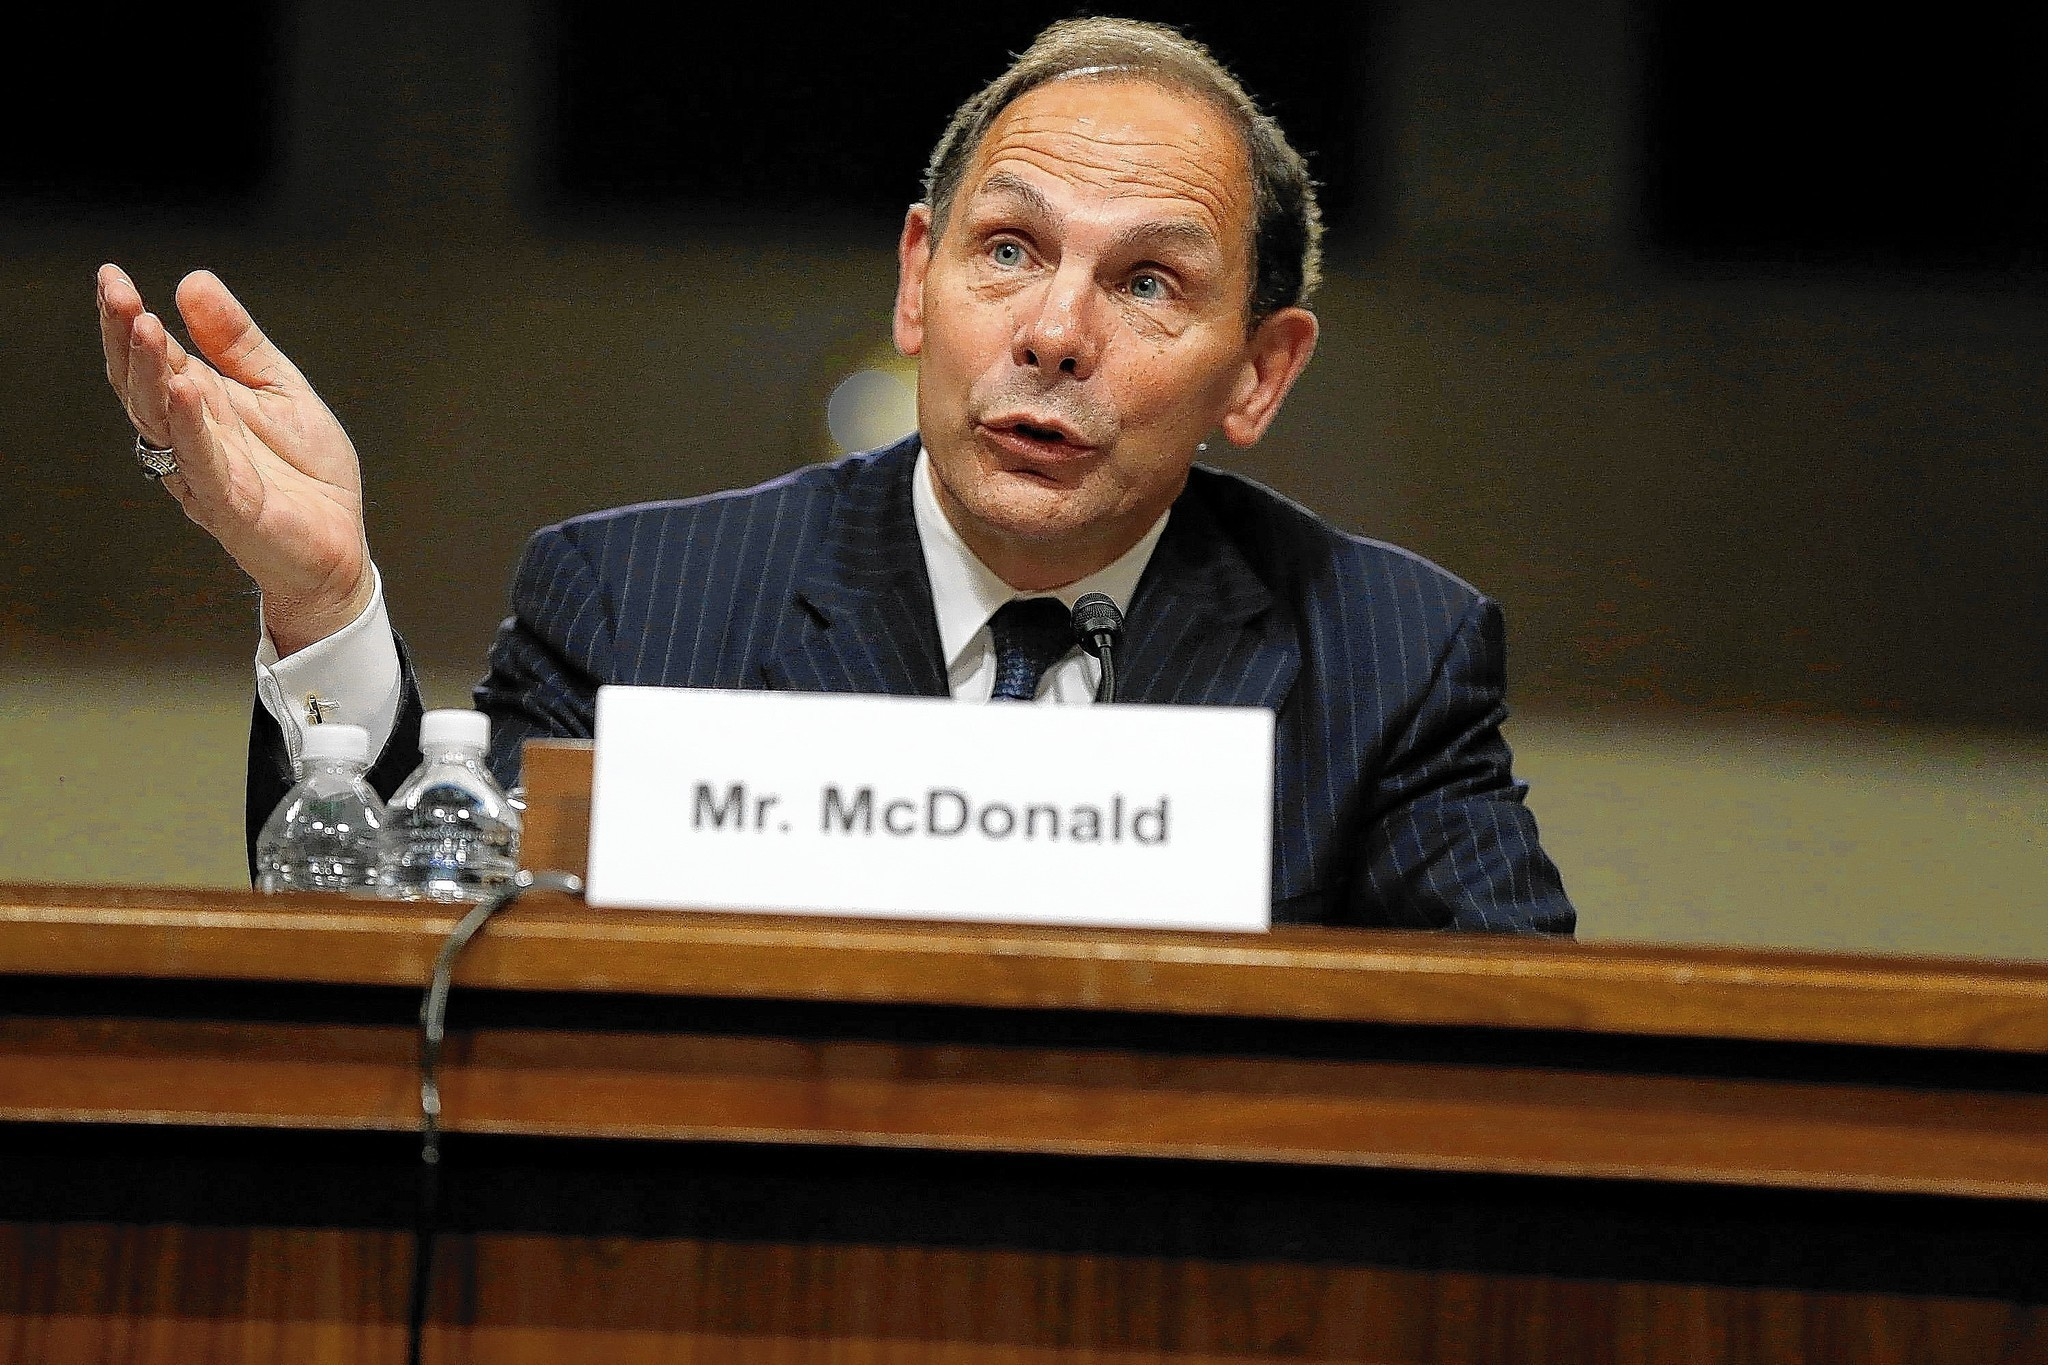 Obama's pick for VA chief vows to fix 'systemic failures'